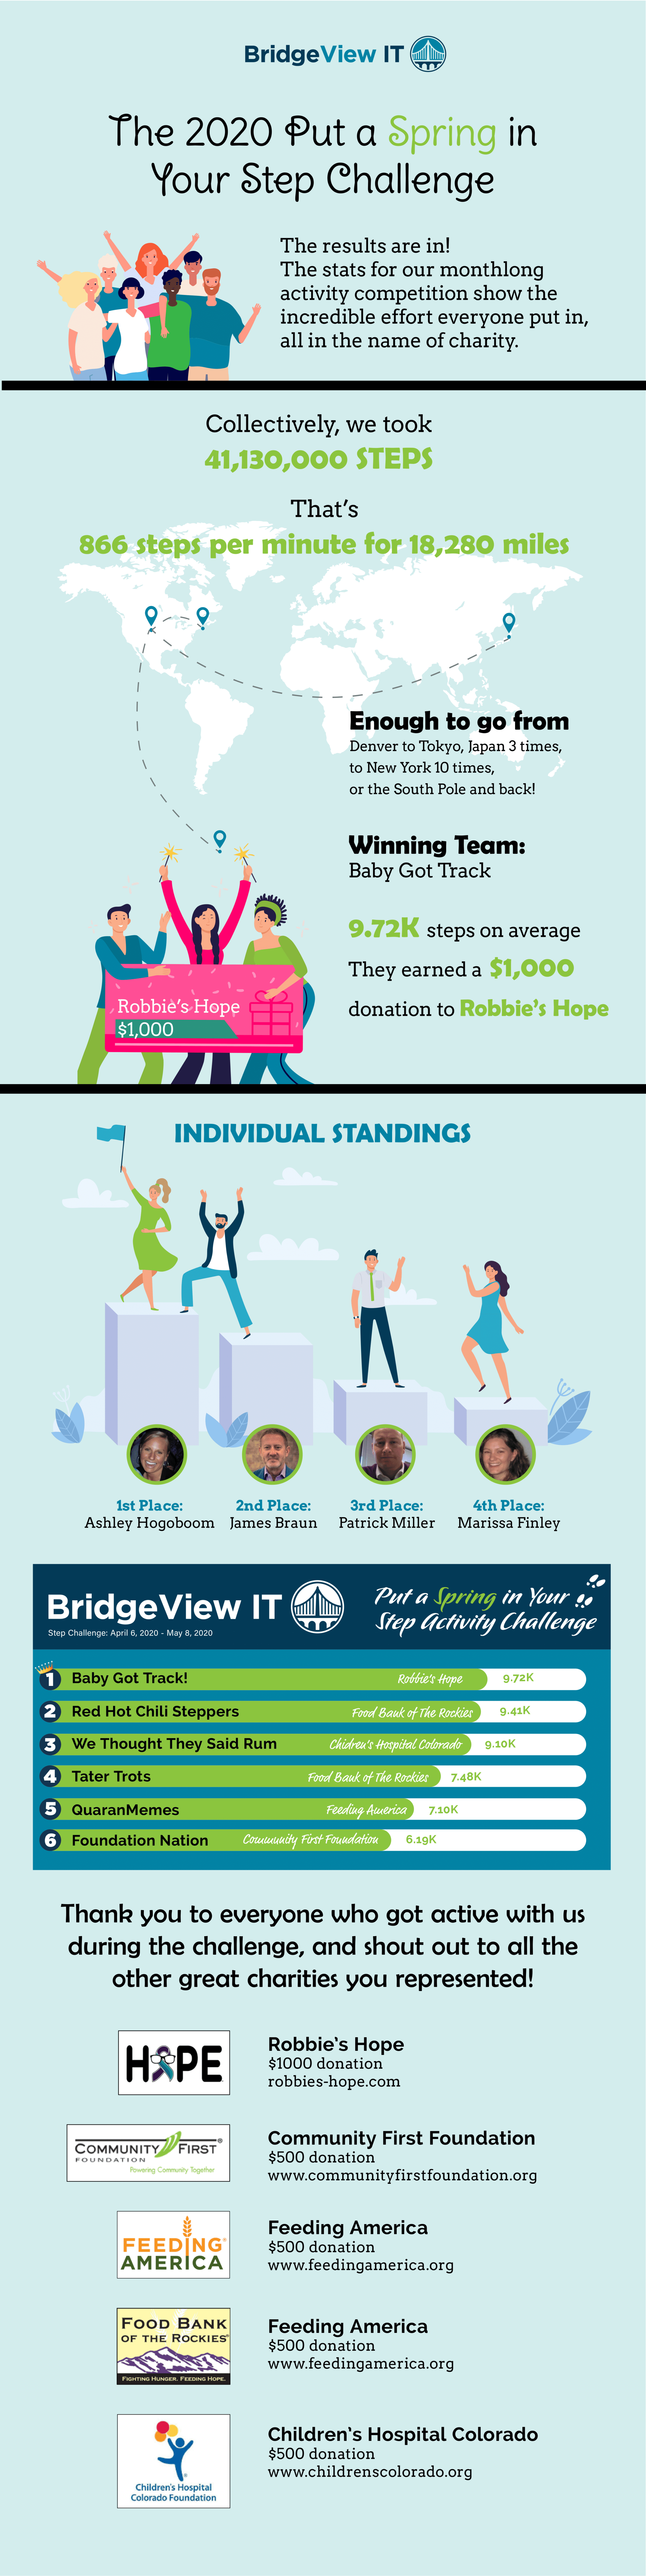 BridgeView's Put a Spring in Your Step Challenge is OVER! The last four weeks flew by, and we want to personally thank everyone for all your hard work. This has been a motivating competition that got us all (safely) out of the house and active. Check out the stats below to discover just how far we walked and to see how the competition fared.